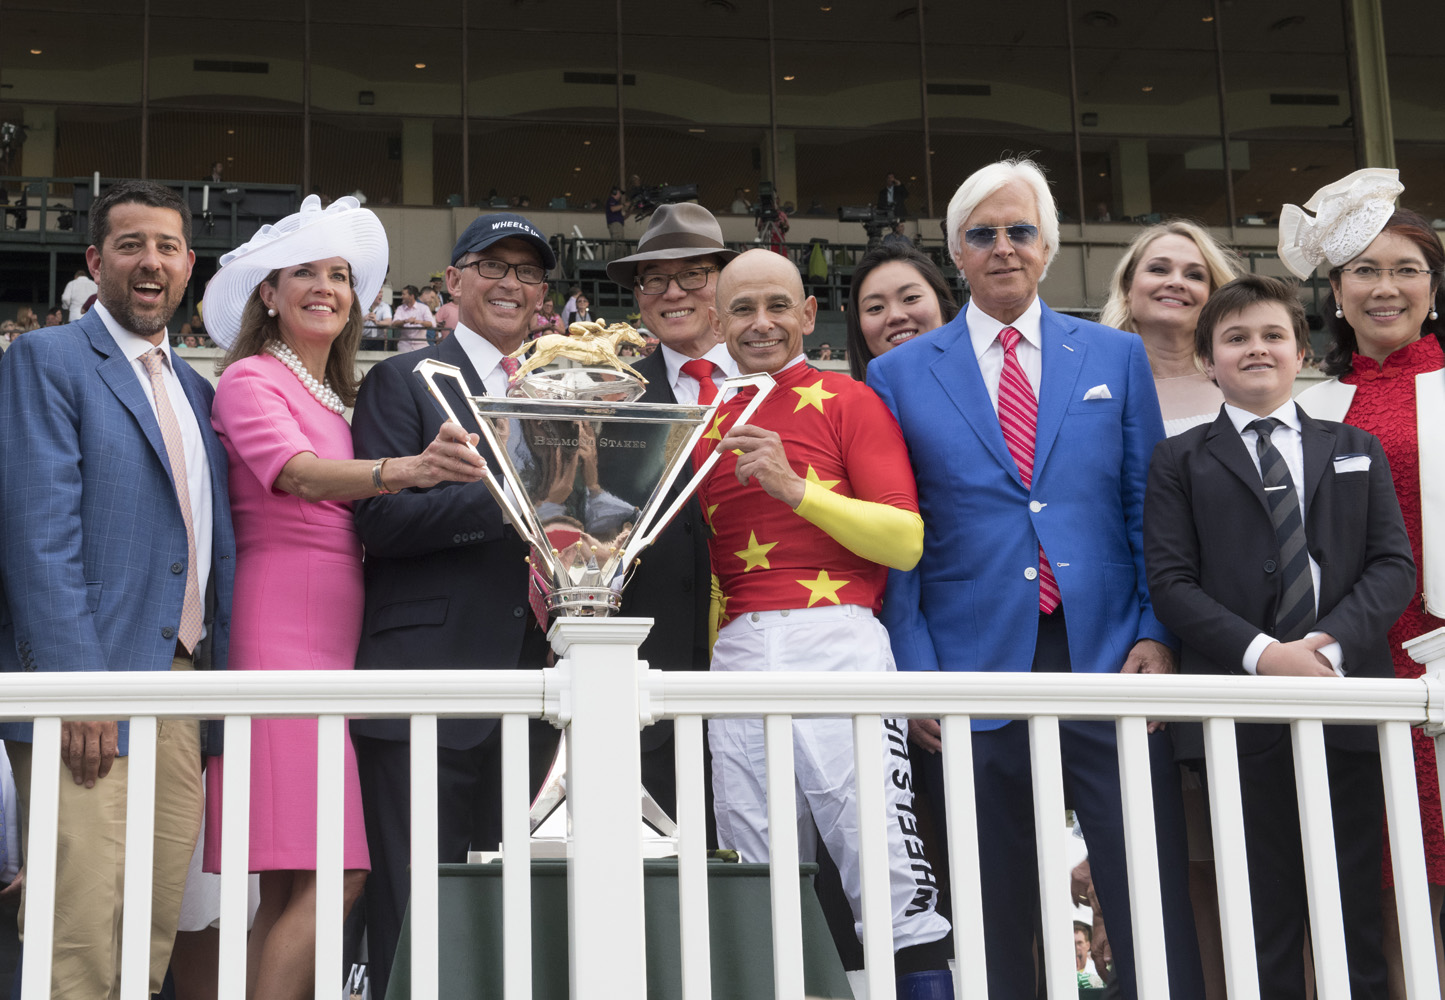 Bob Baffert and the winning connections of Justify during the 2018 Triple Crown trophy presentation (Skip Dickstein)